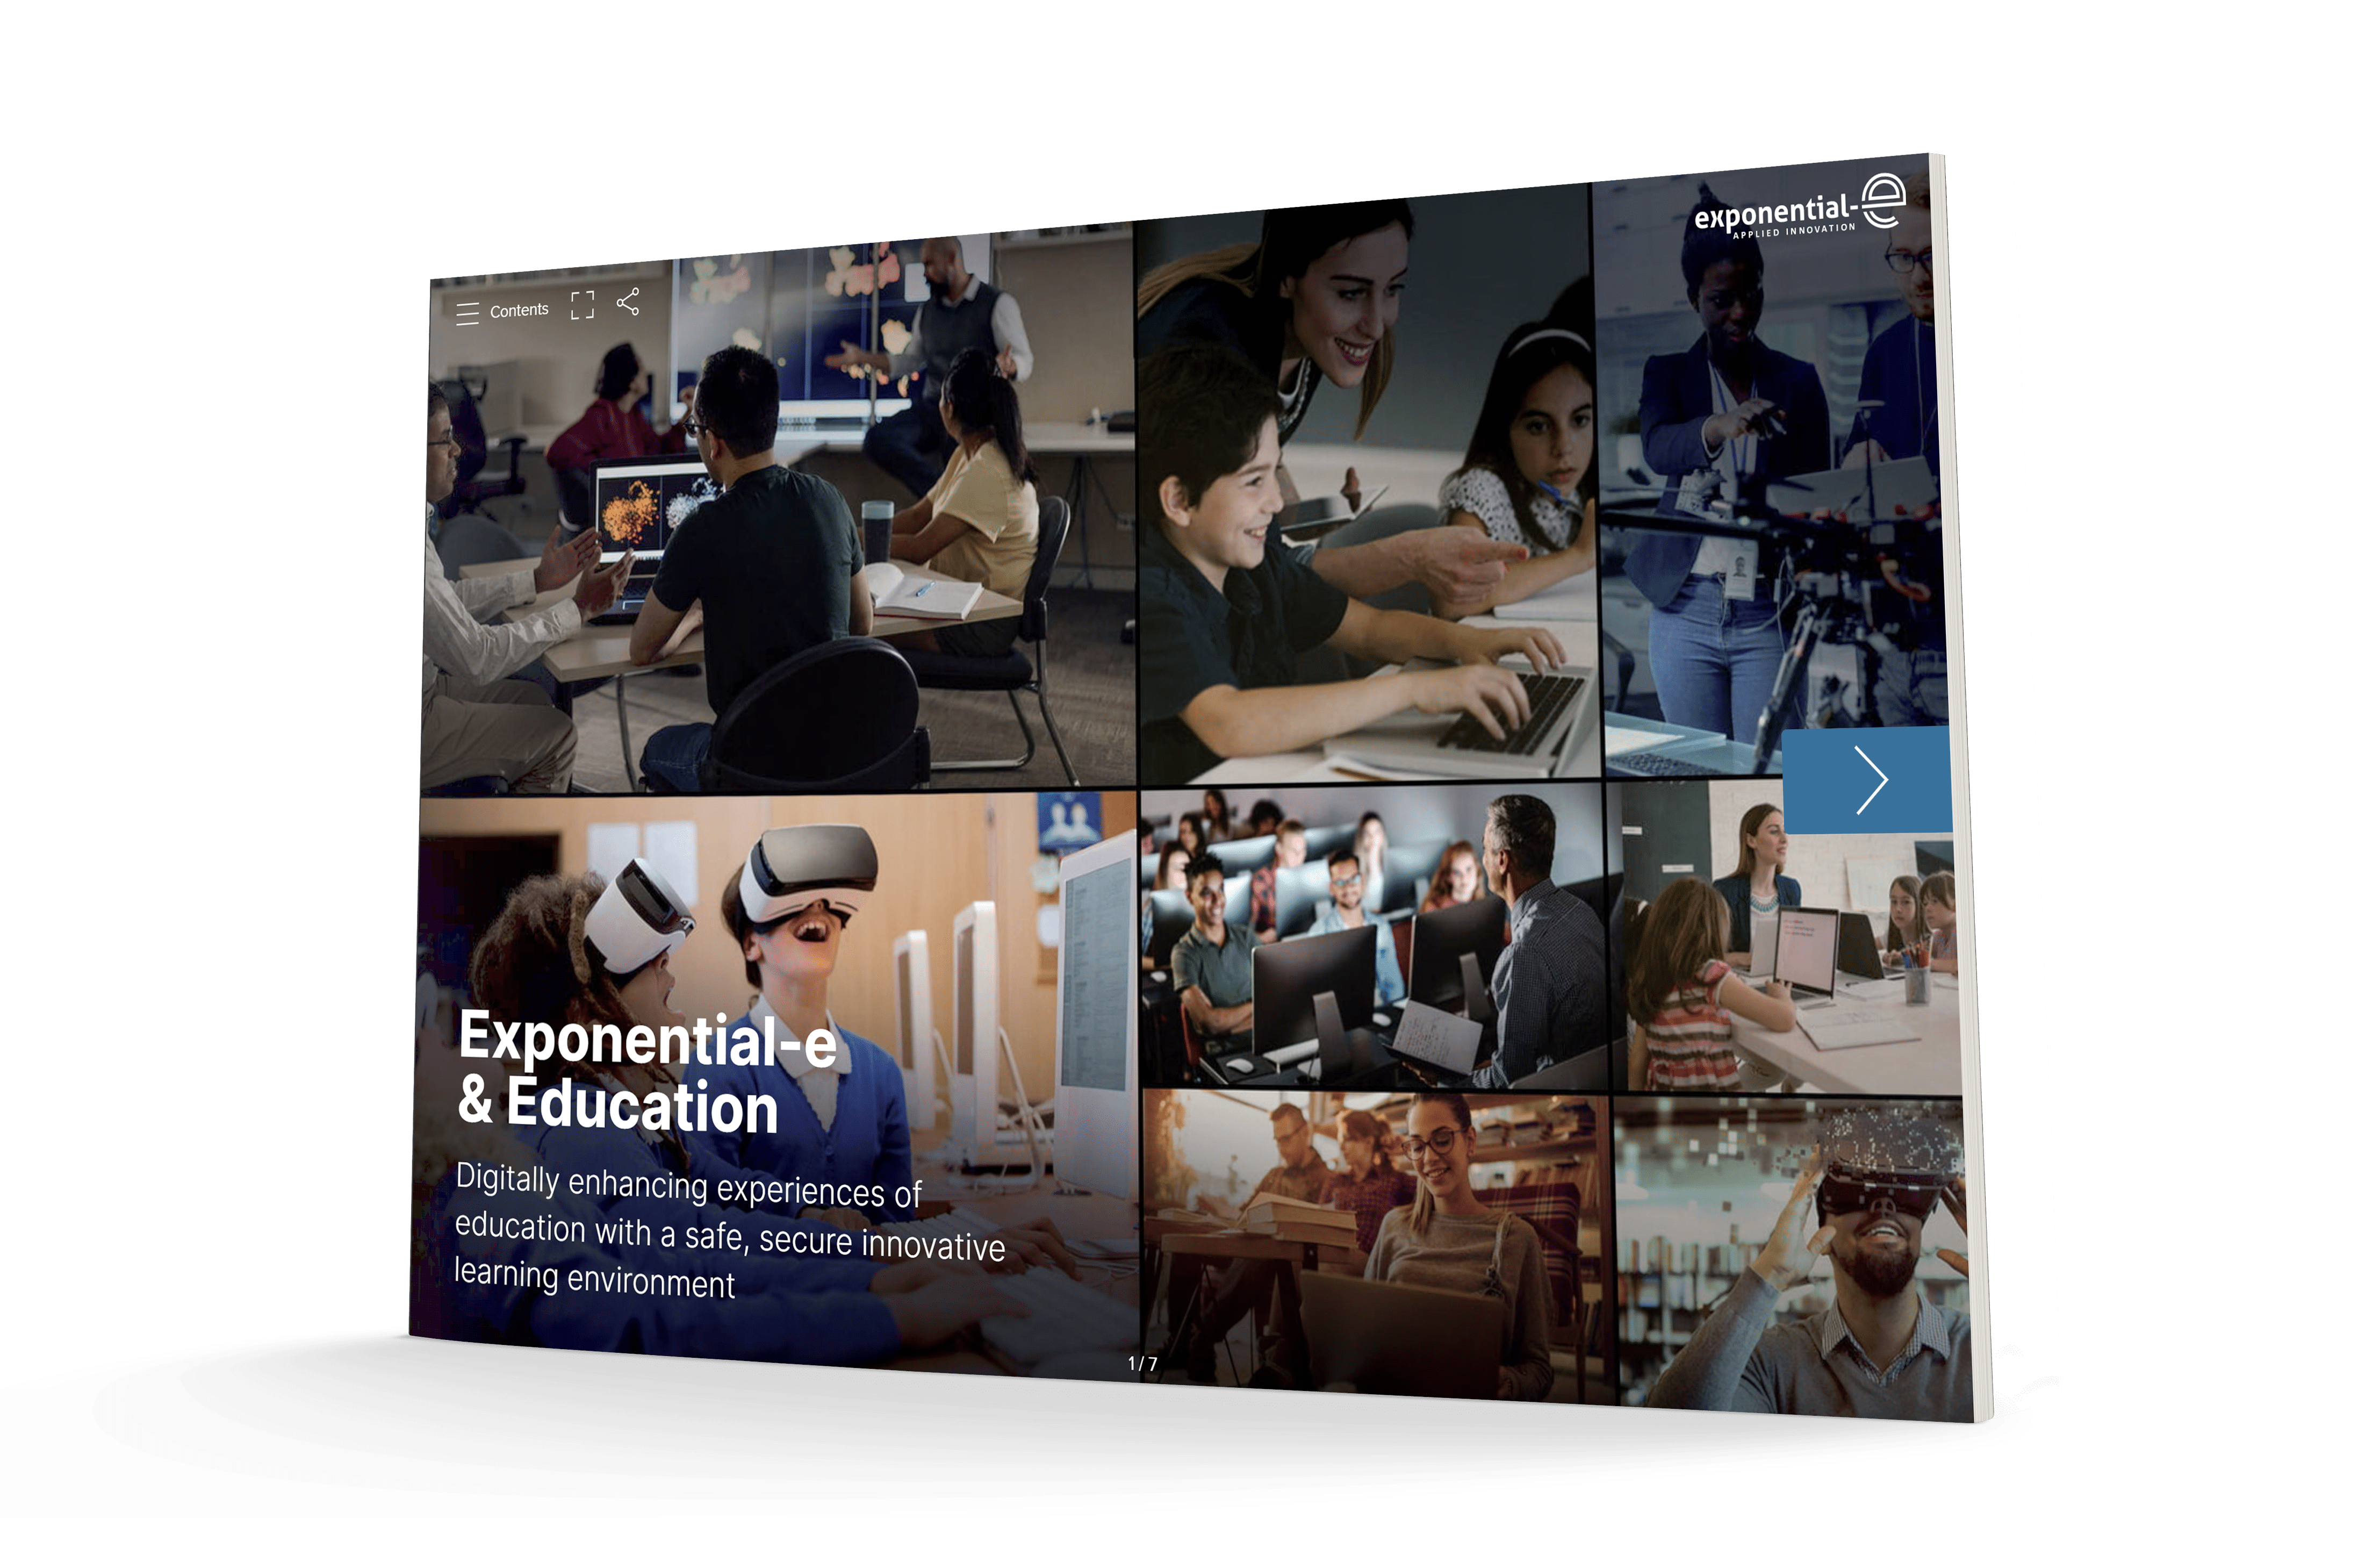 View our brochure: Exponential-e and Education.